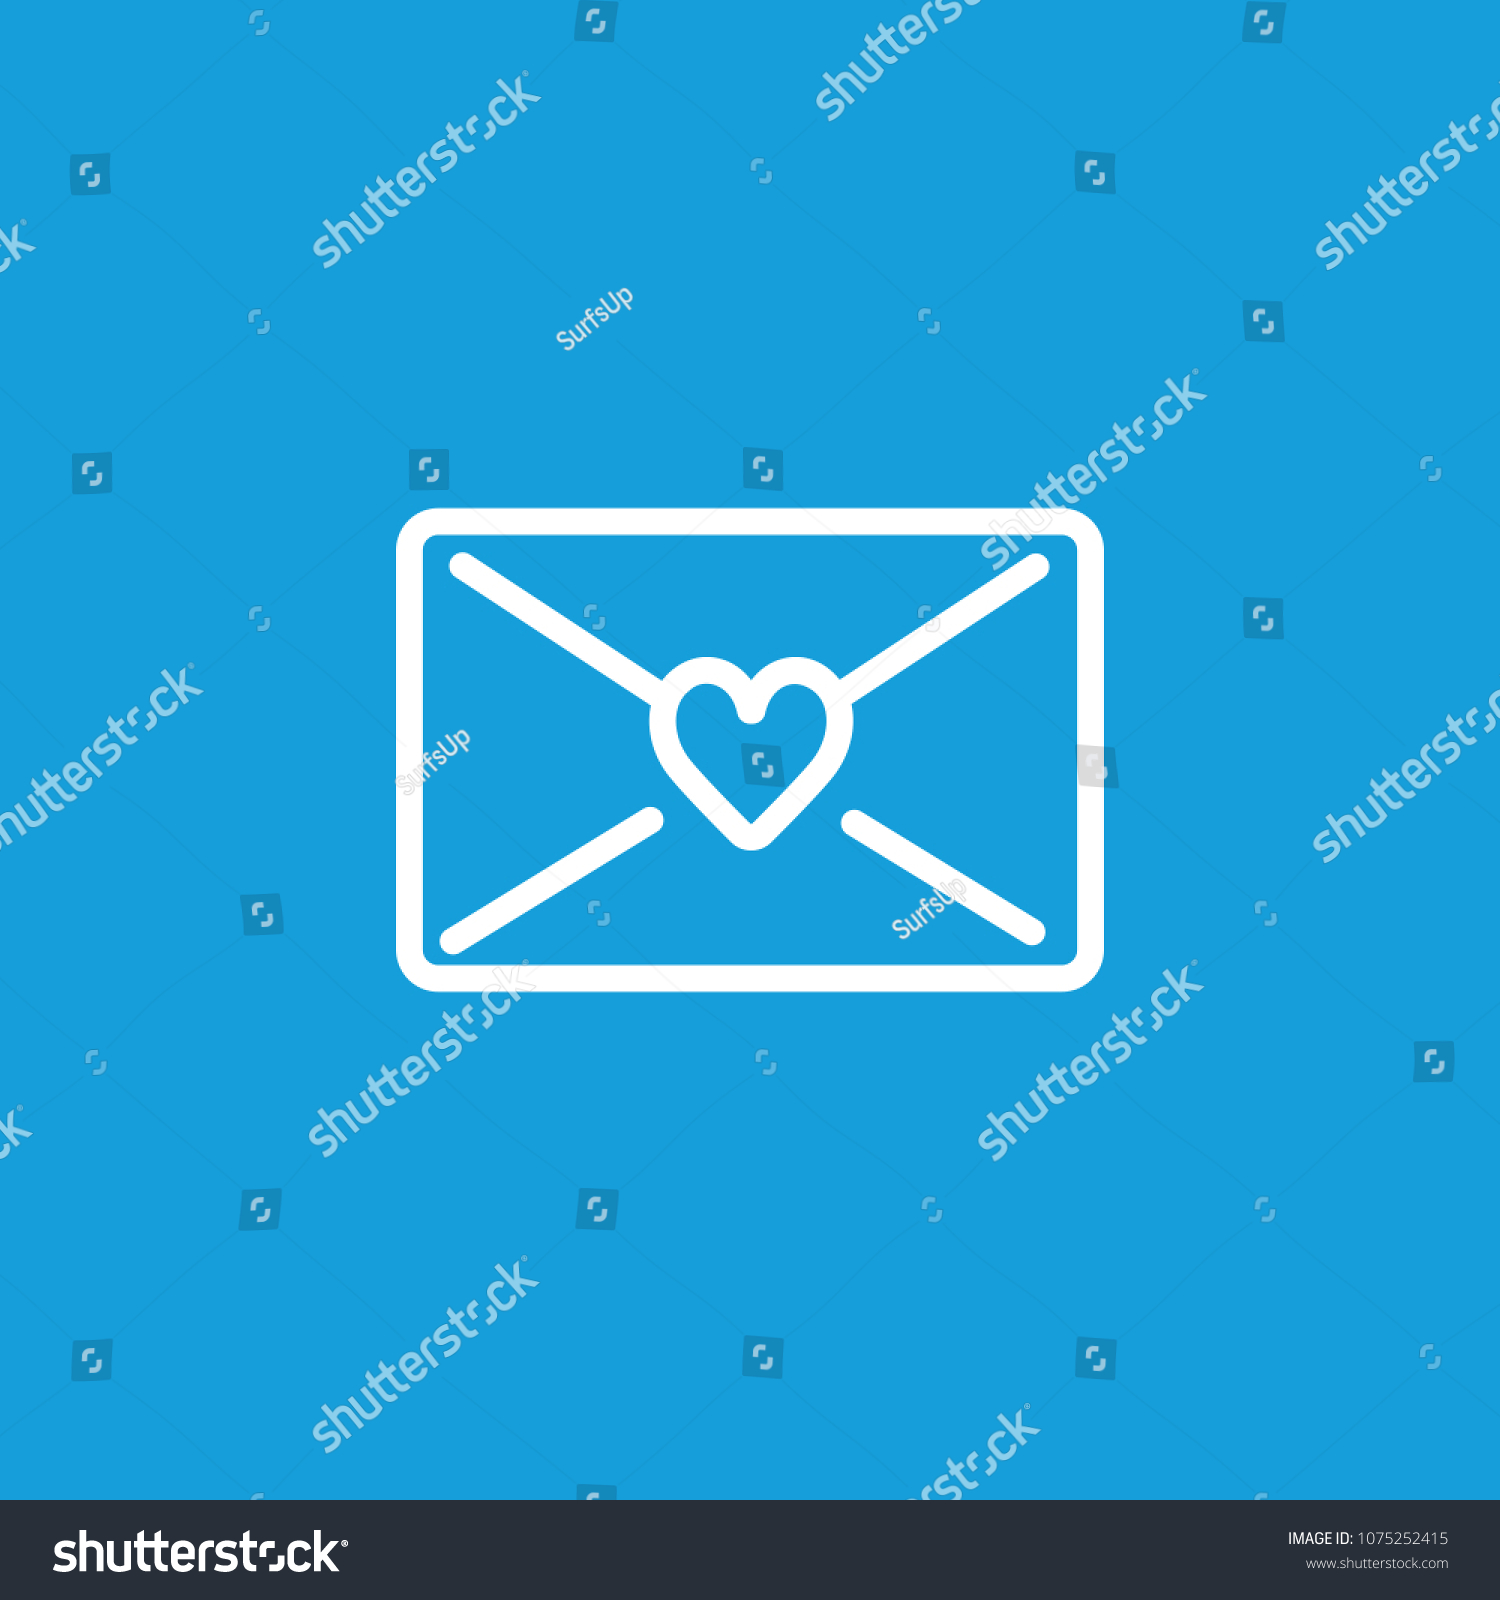 Line Icon Letter Sealed Heart Love Stock Vector Royalty Free